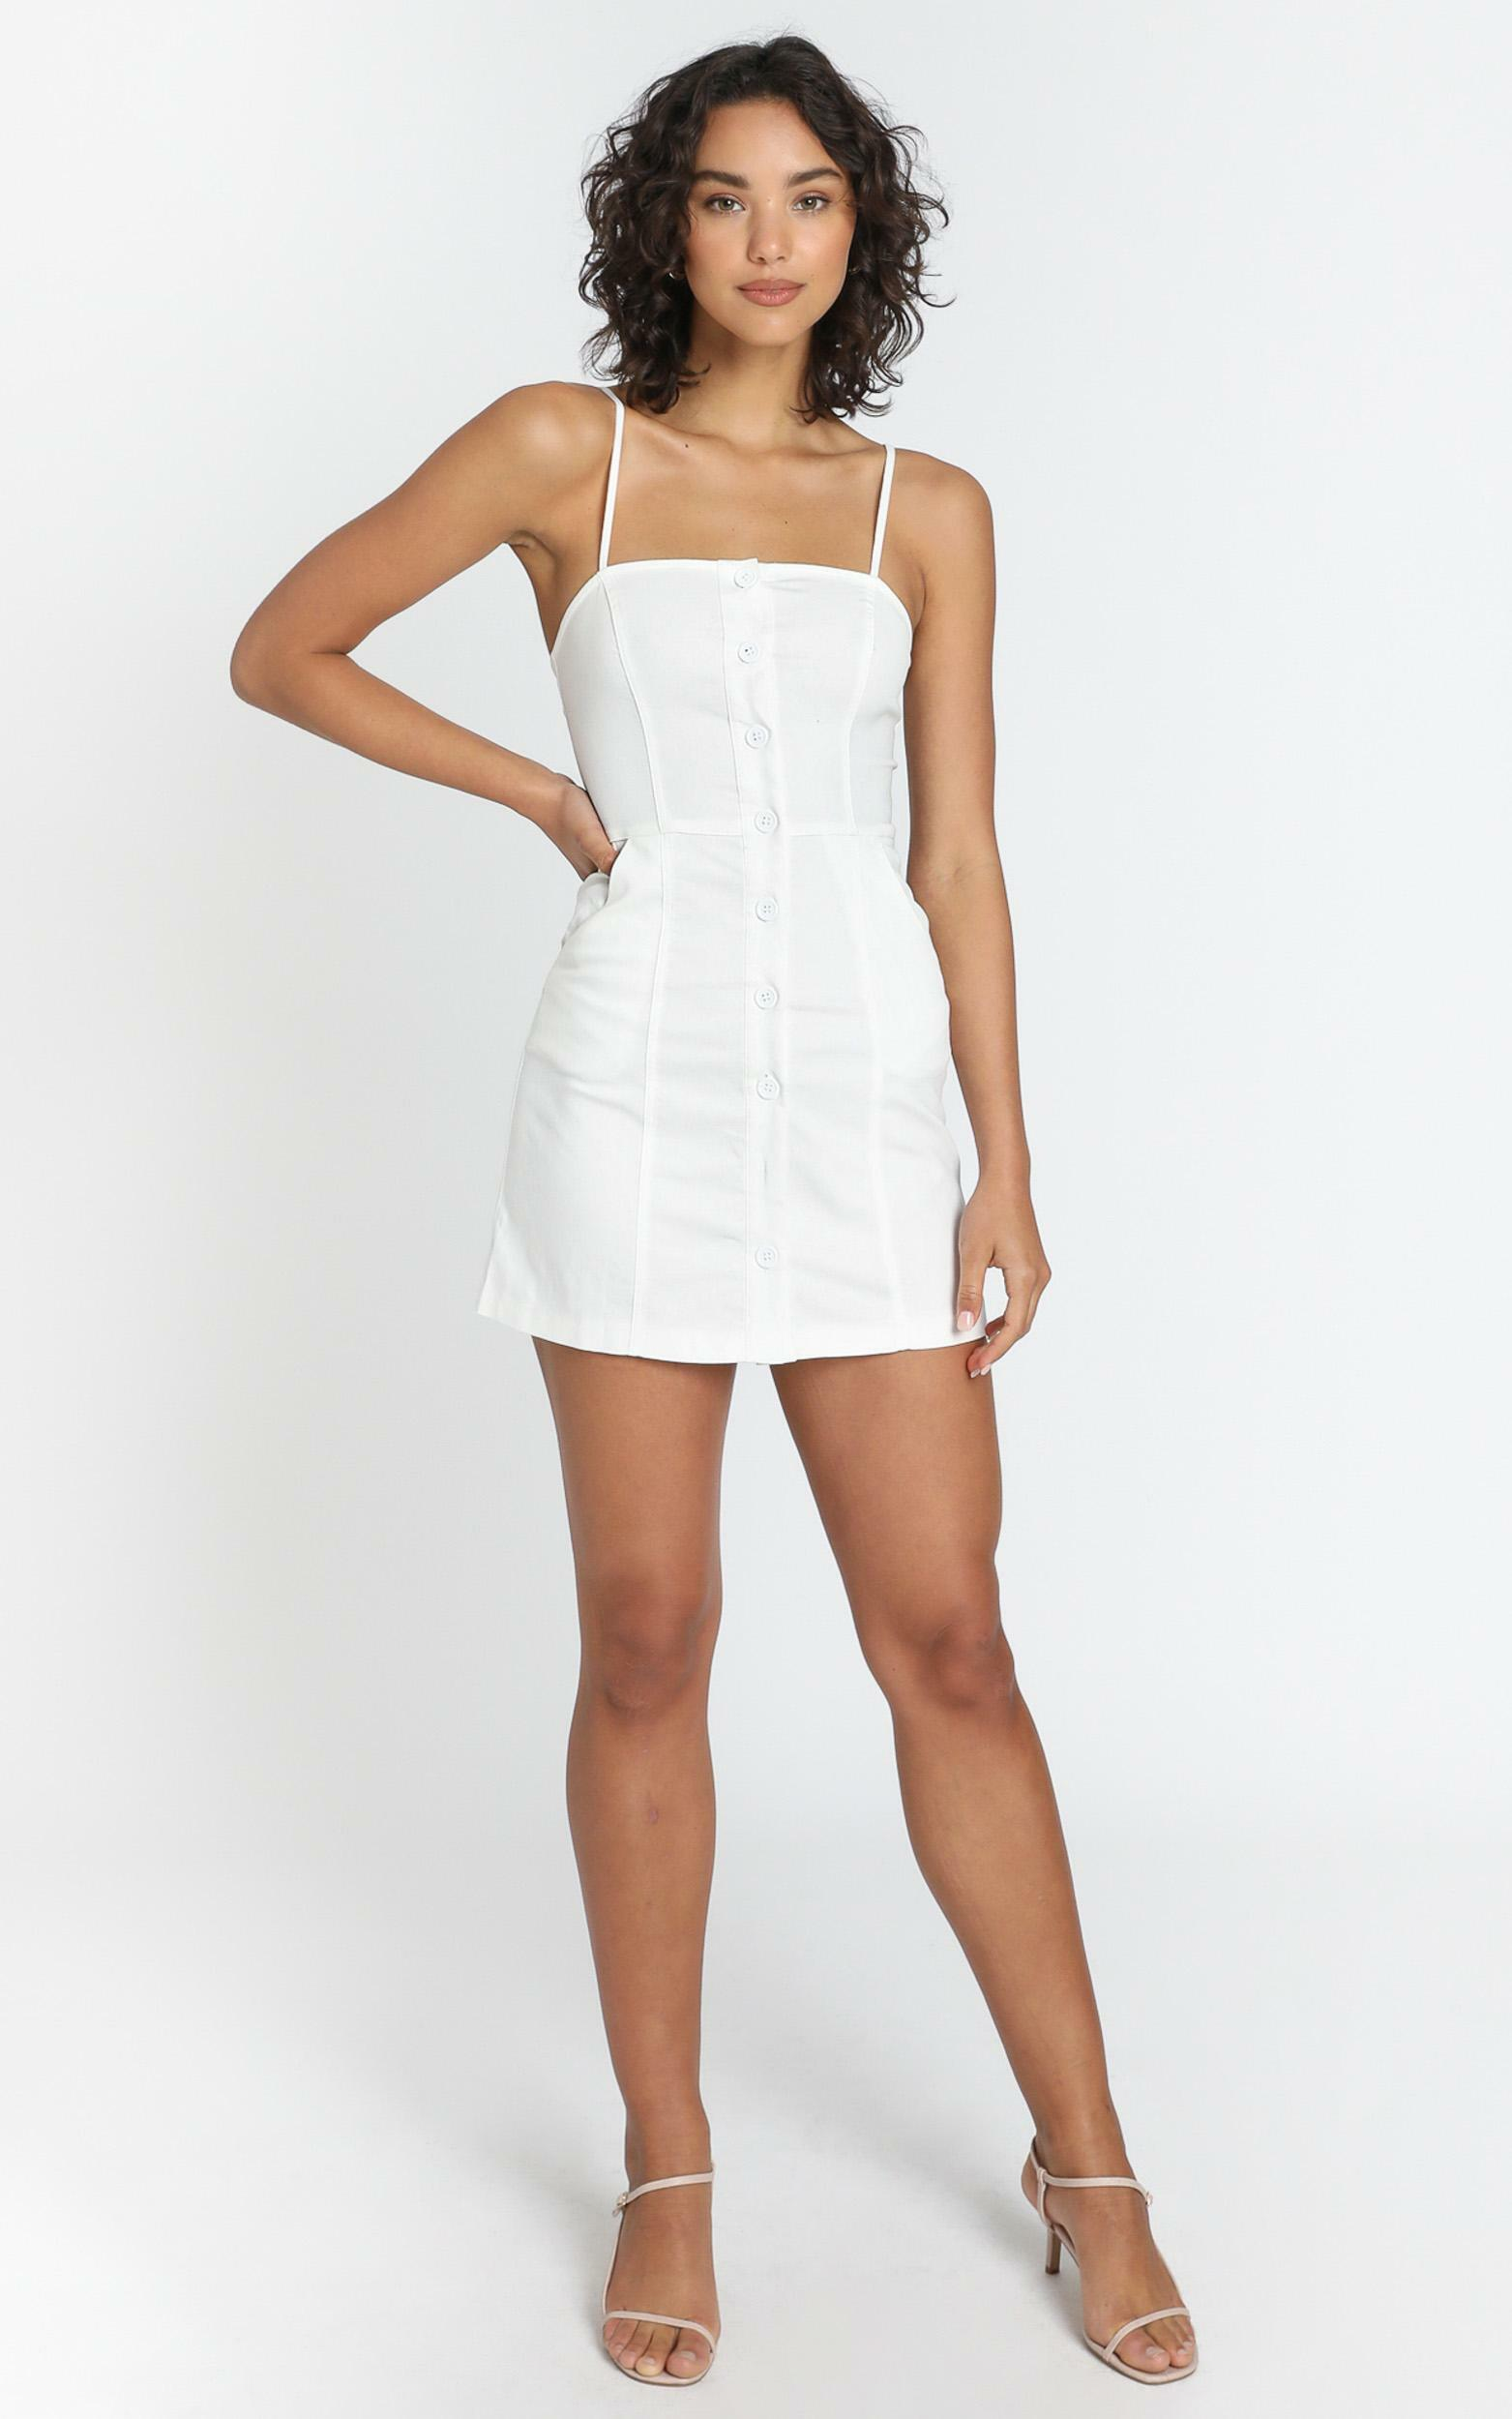 Fleur Dress in White - 6 (XS), White, hi-res image number null